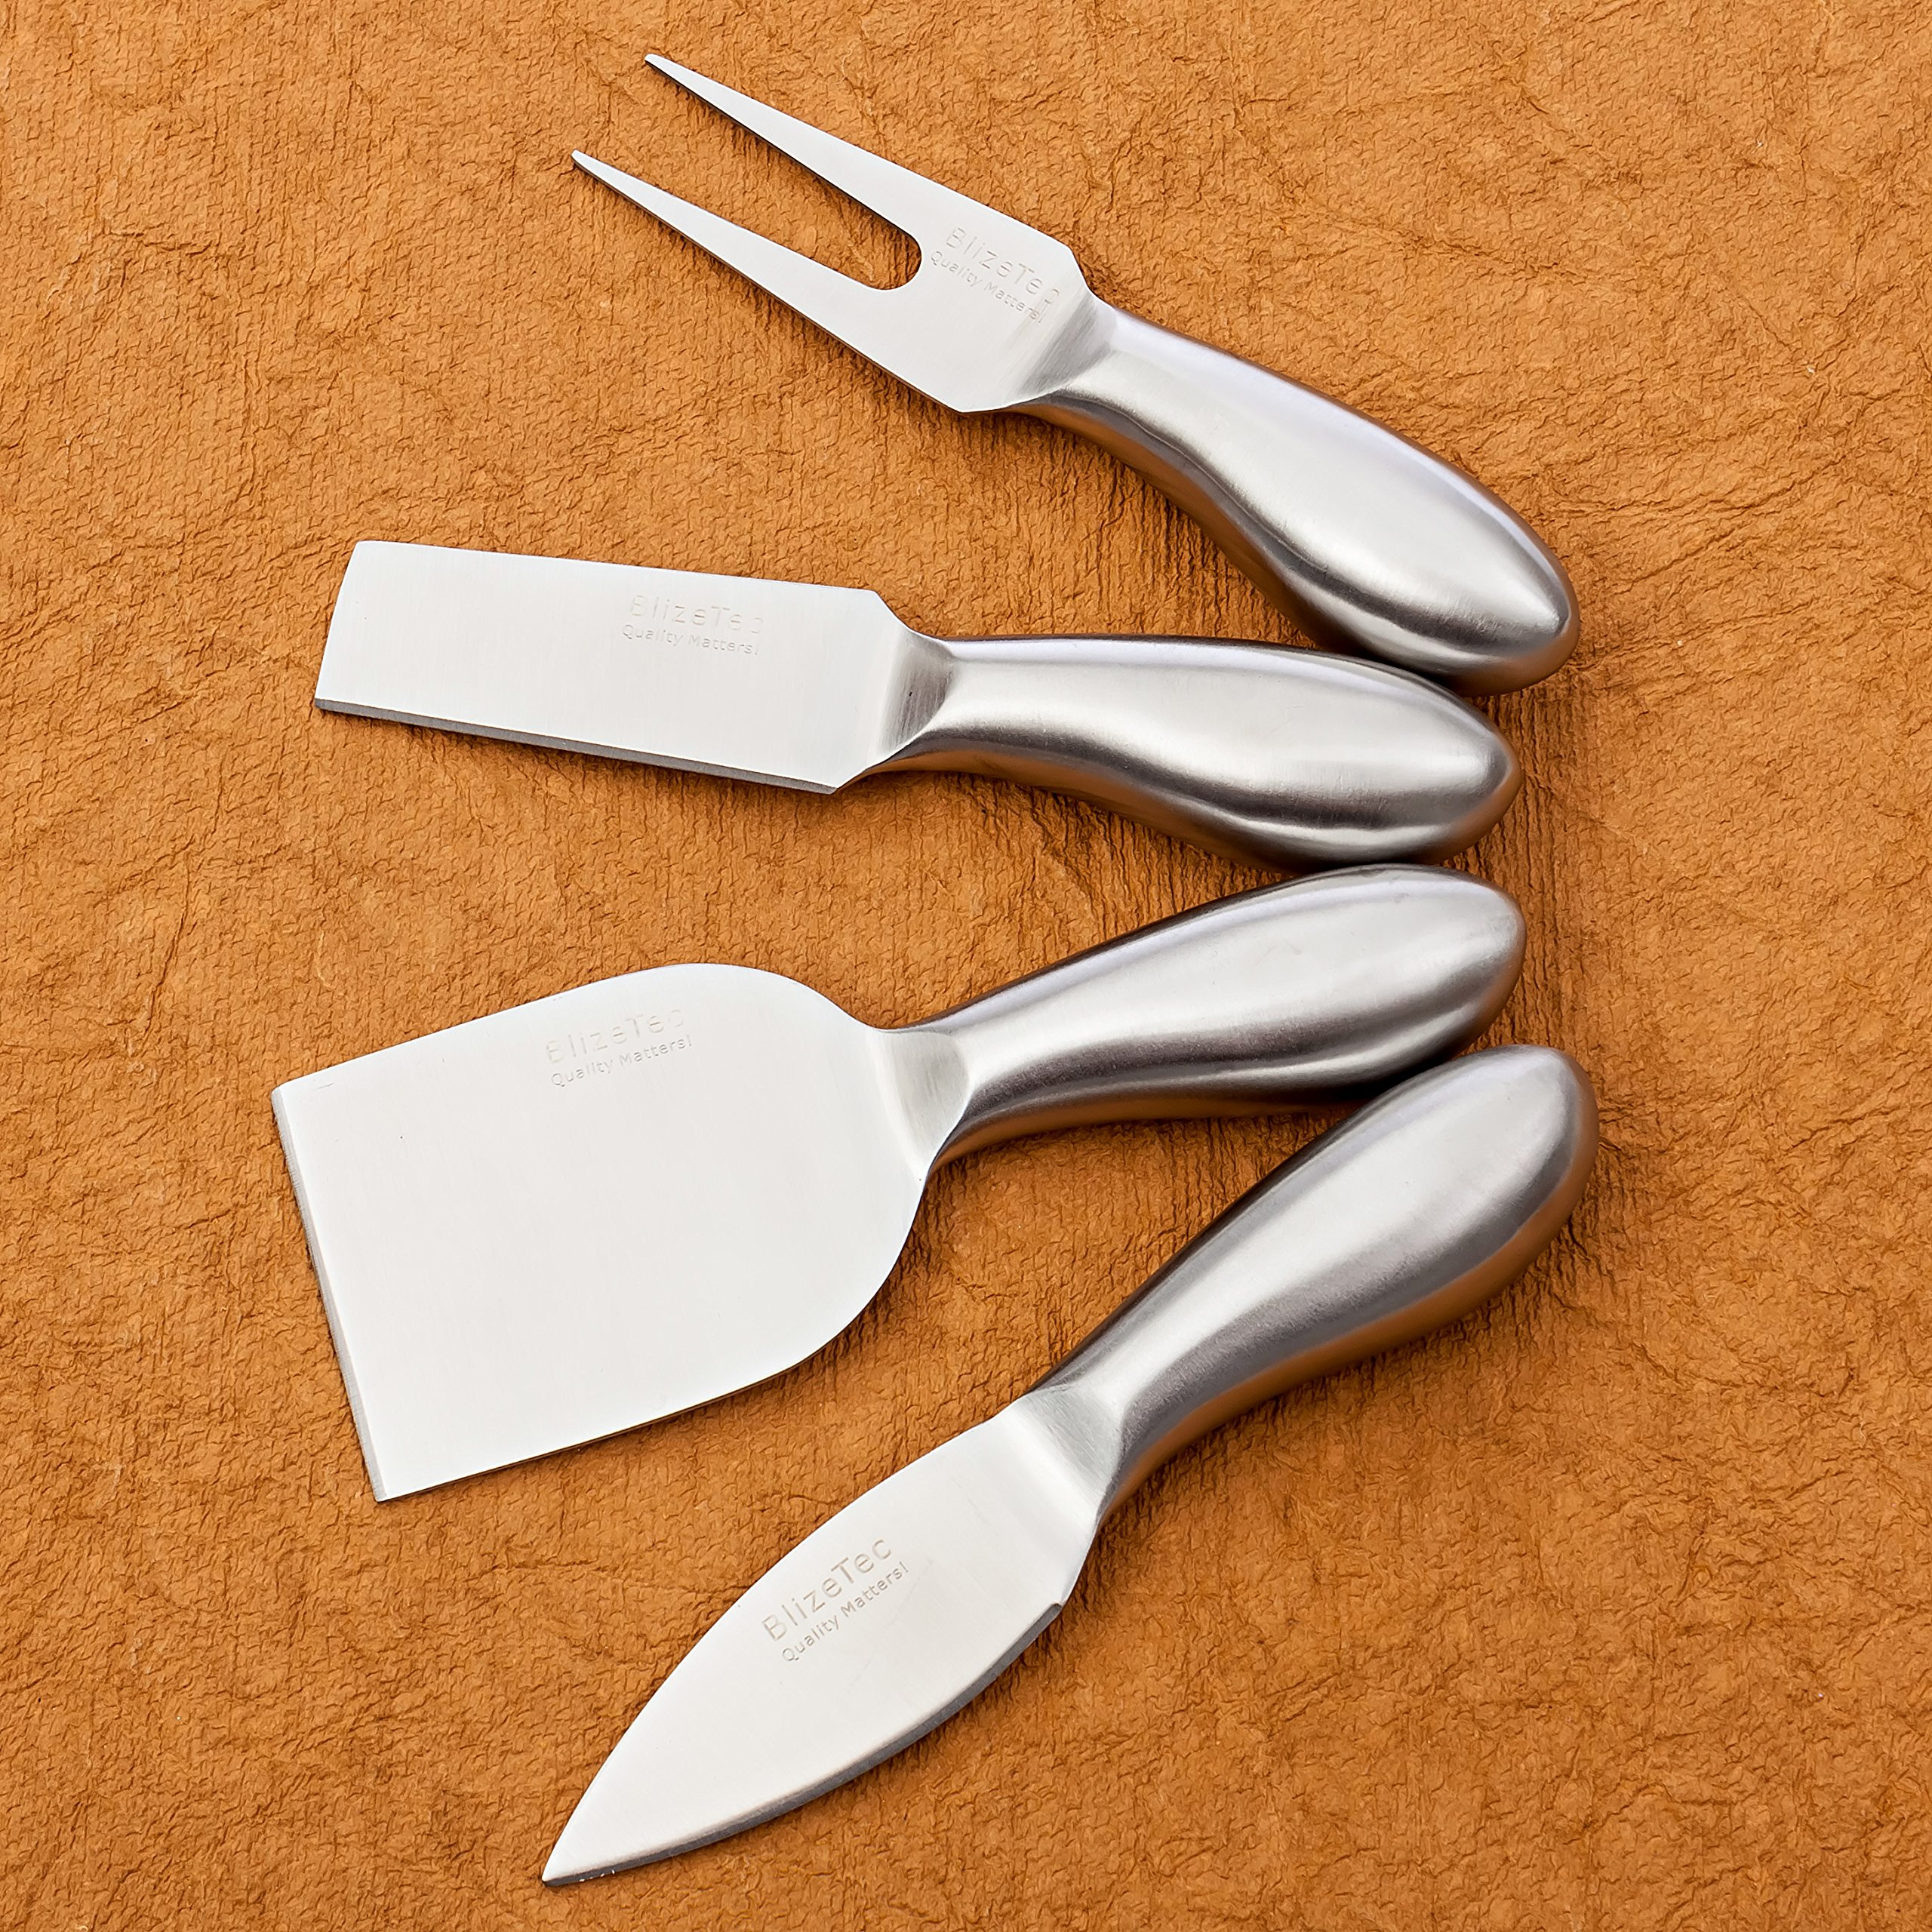 Cheese Knives: BlizeTec Cheese Slicer & Cutter Set (4 pcs) by BlizeTec (Image #6)